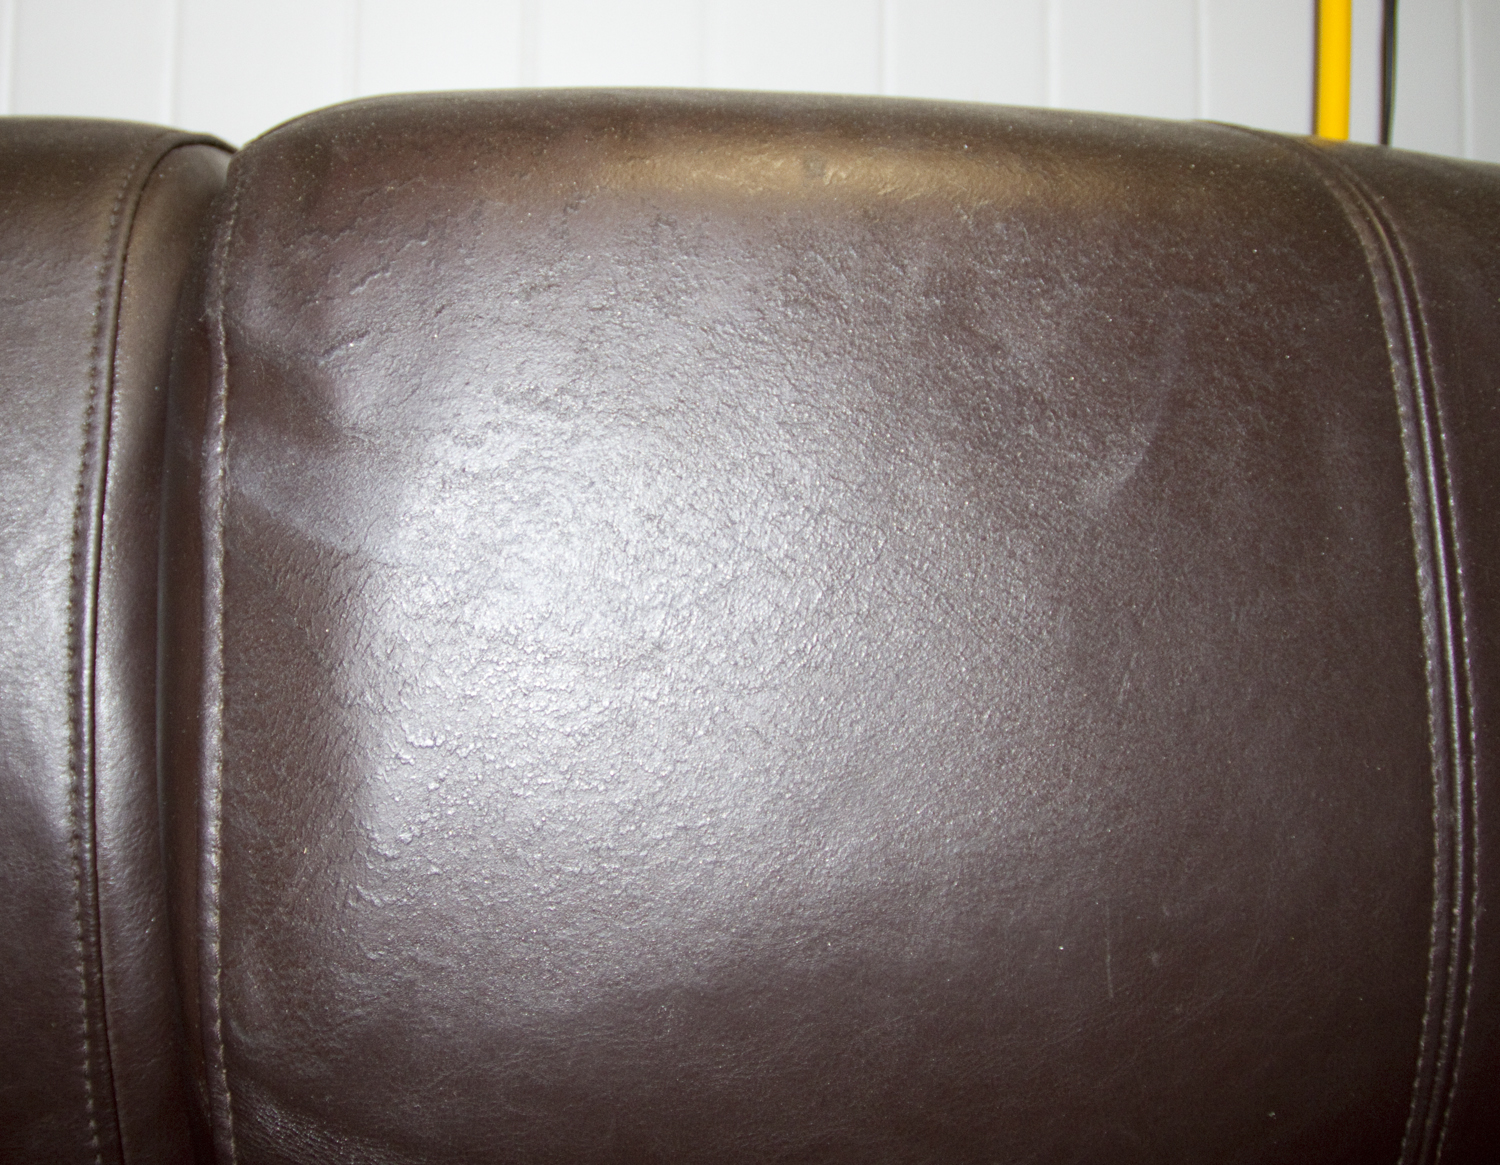 upholstery city restore img couch leather furniture cleaning and fabric park heber